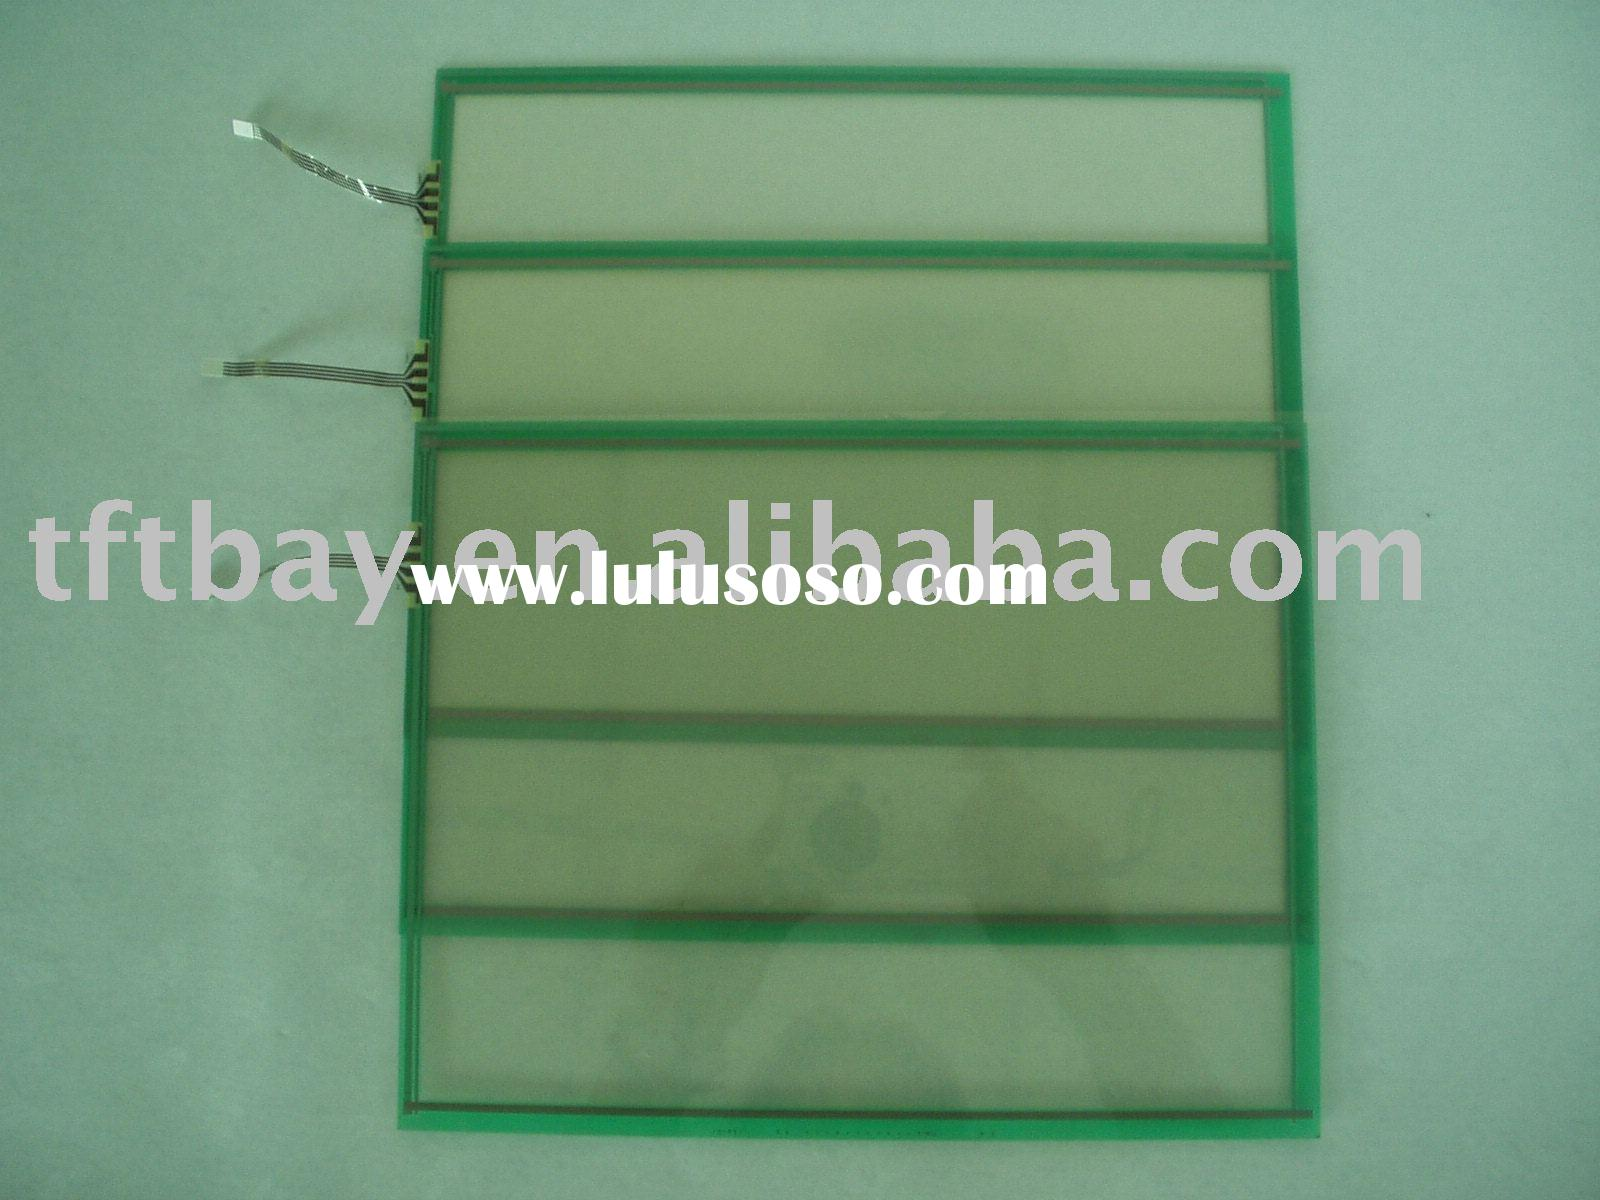 4.3-6.5 inch 4-wire Resistive Touch Panel(Touch screen)